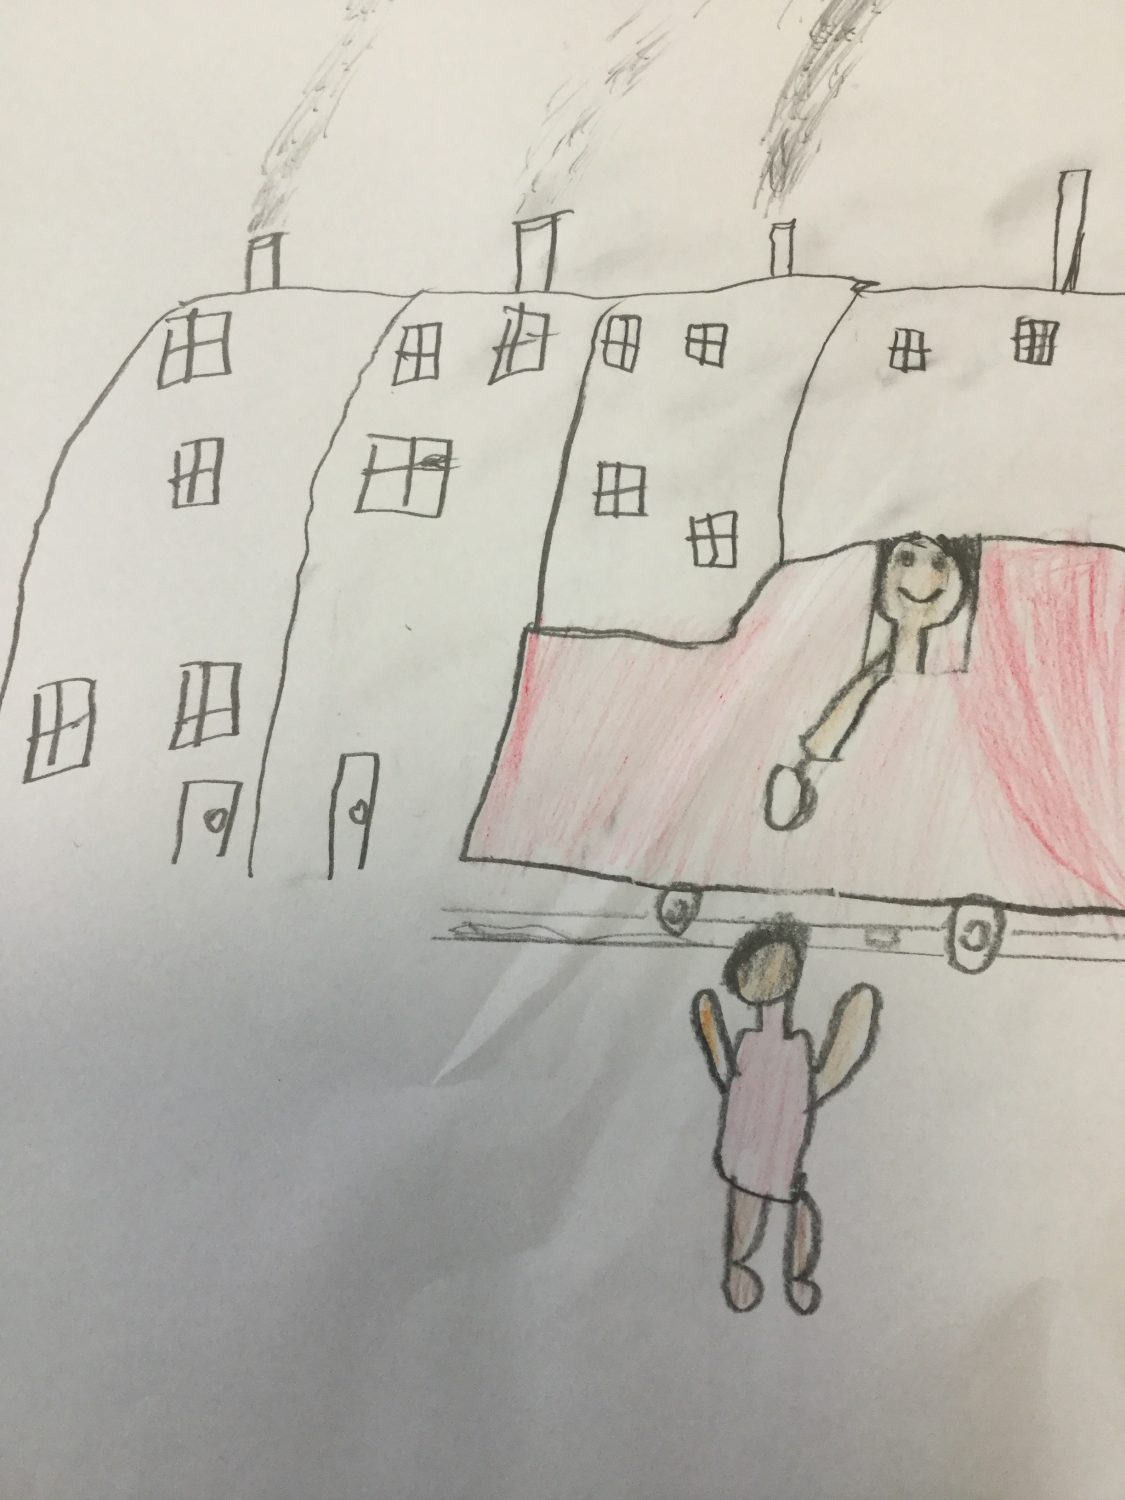 children's drawing of a ice cream van handing an ice-cream to a child. Houses with chimney smoke in the background